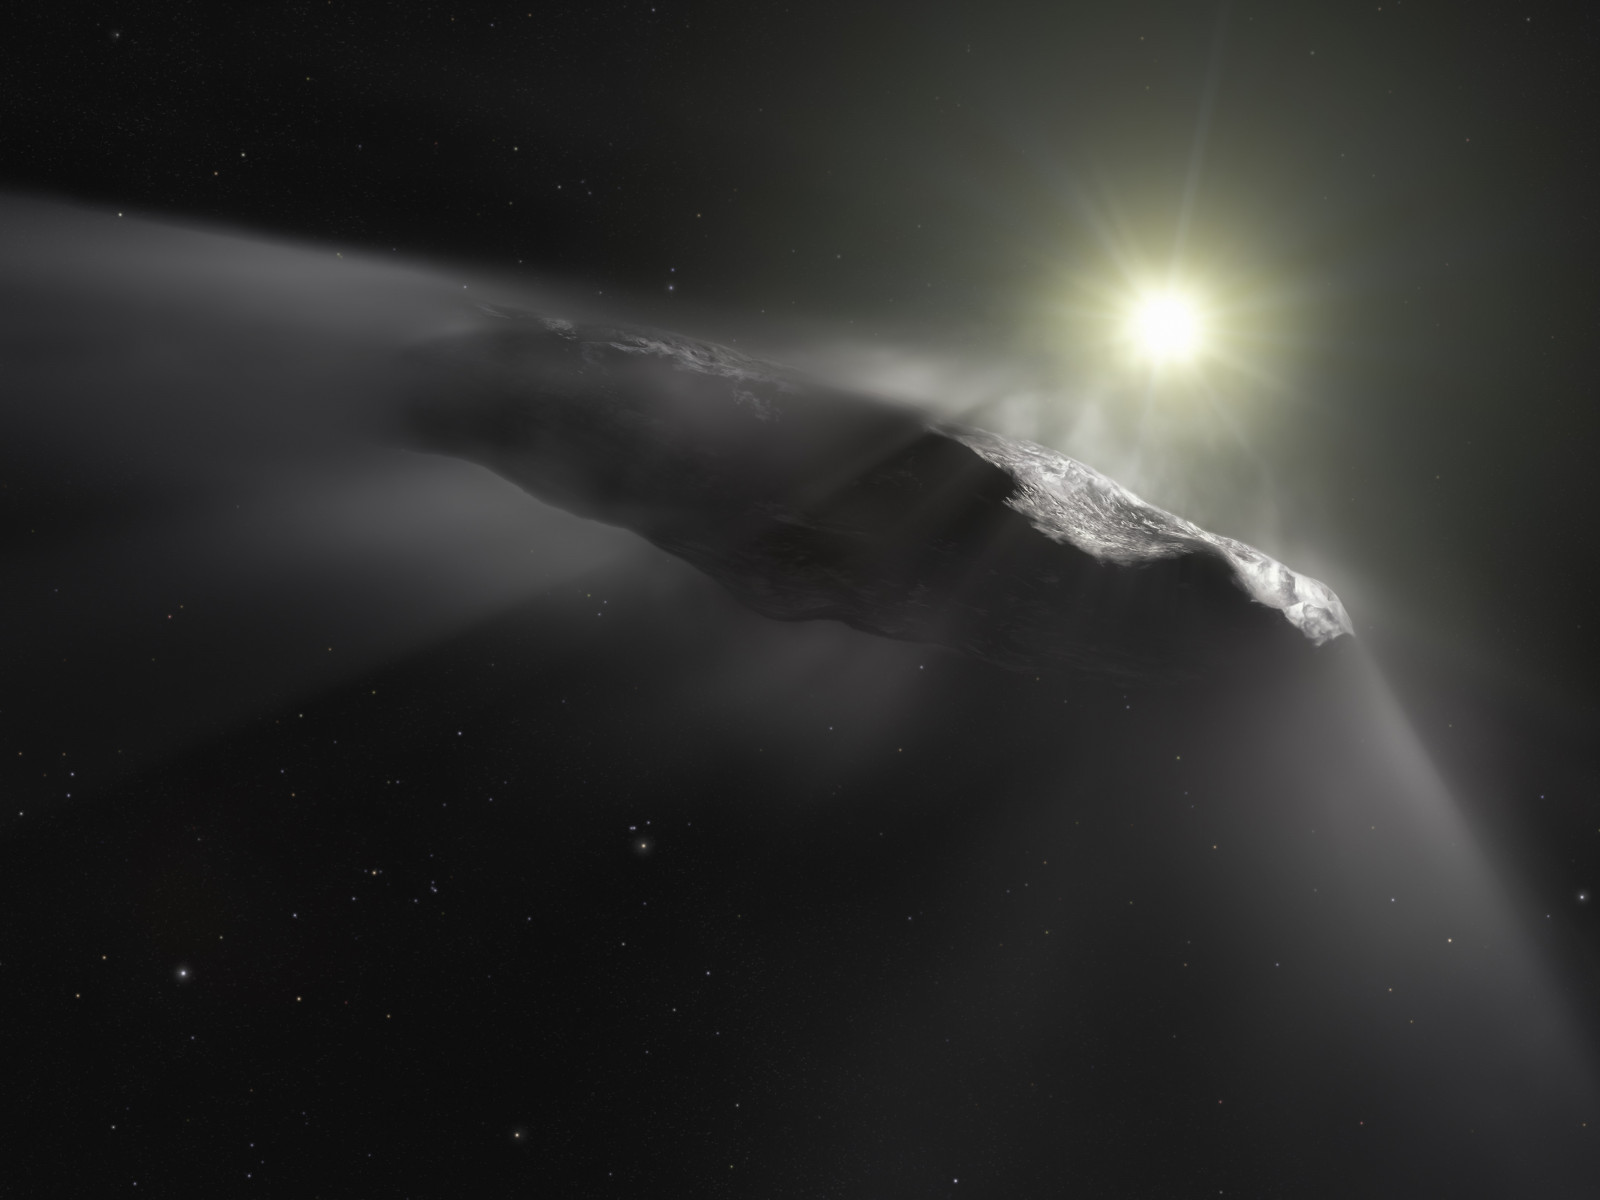 Oumuamua asteroid wallpaper 1600x1200